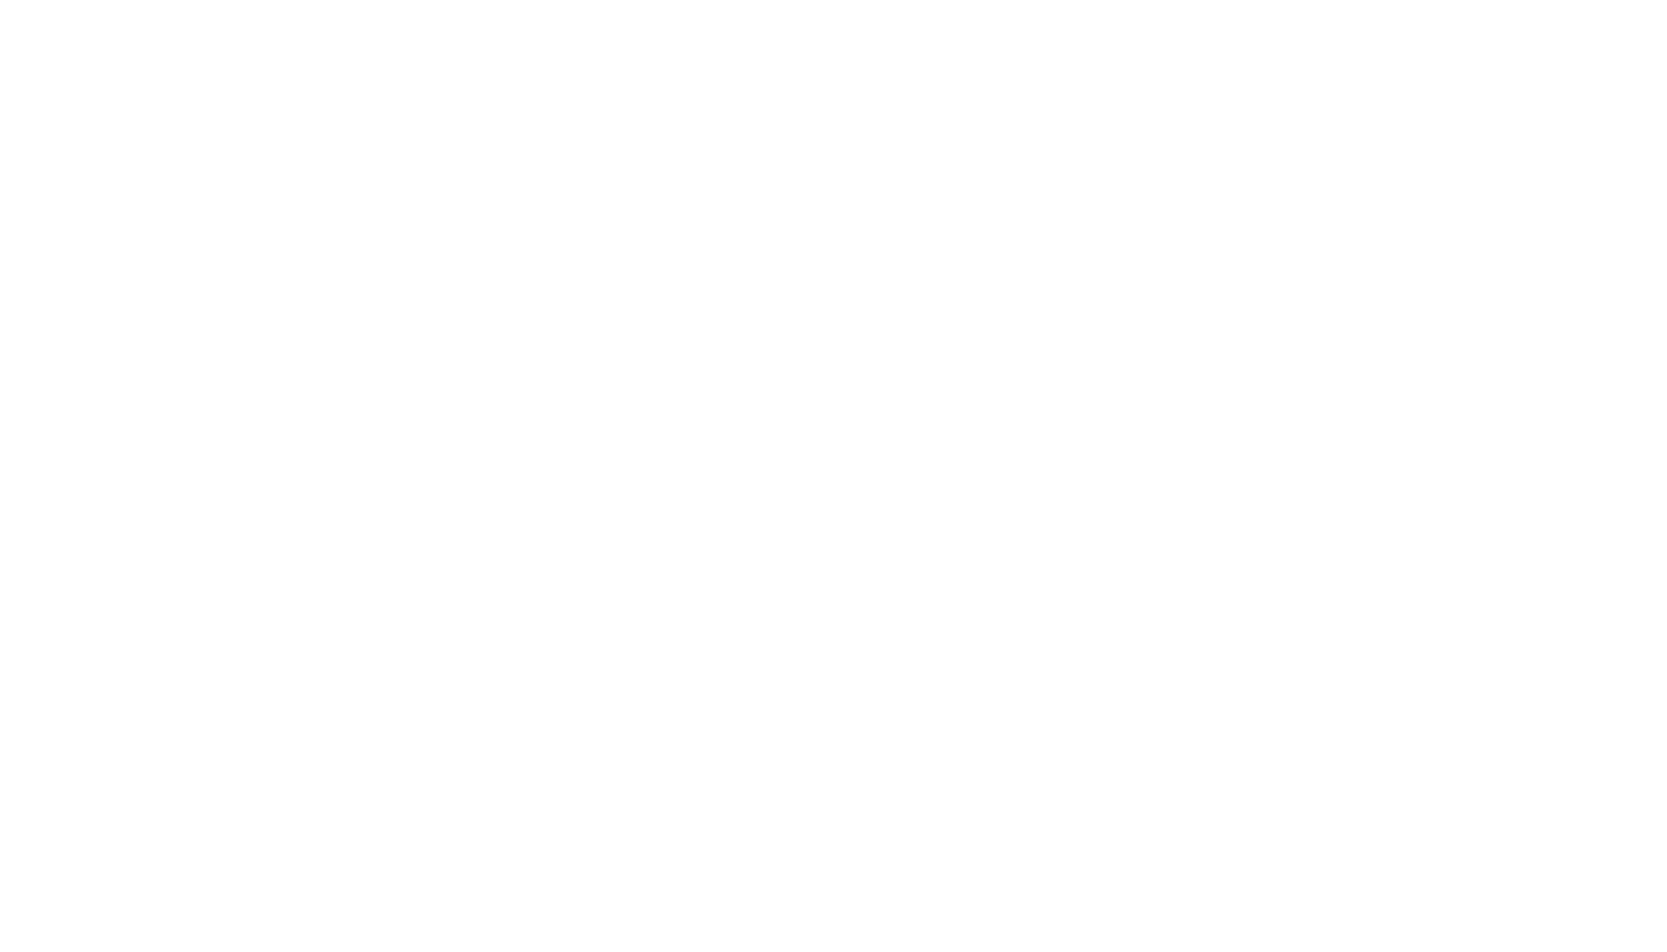 People for portland logo white